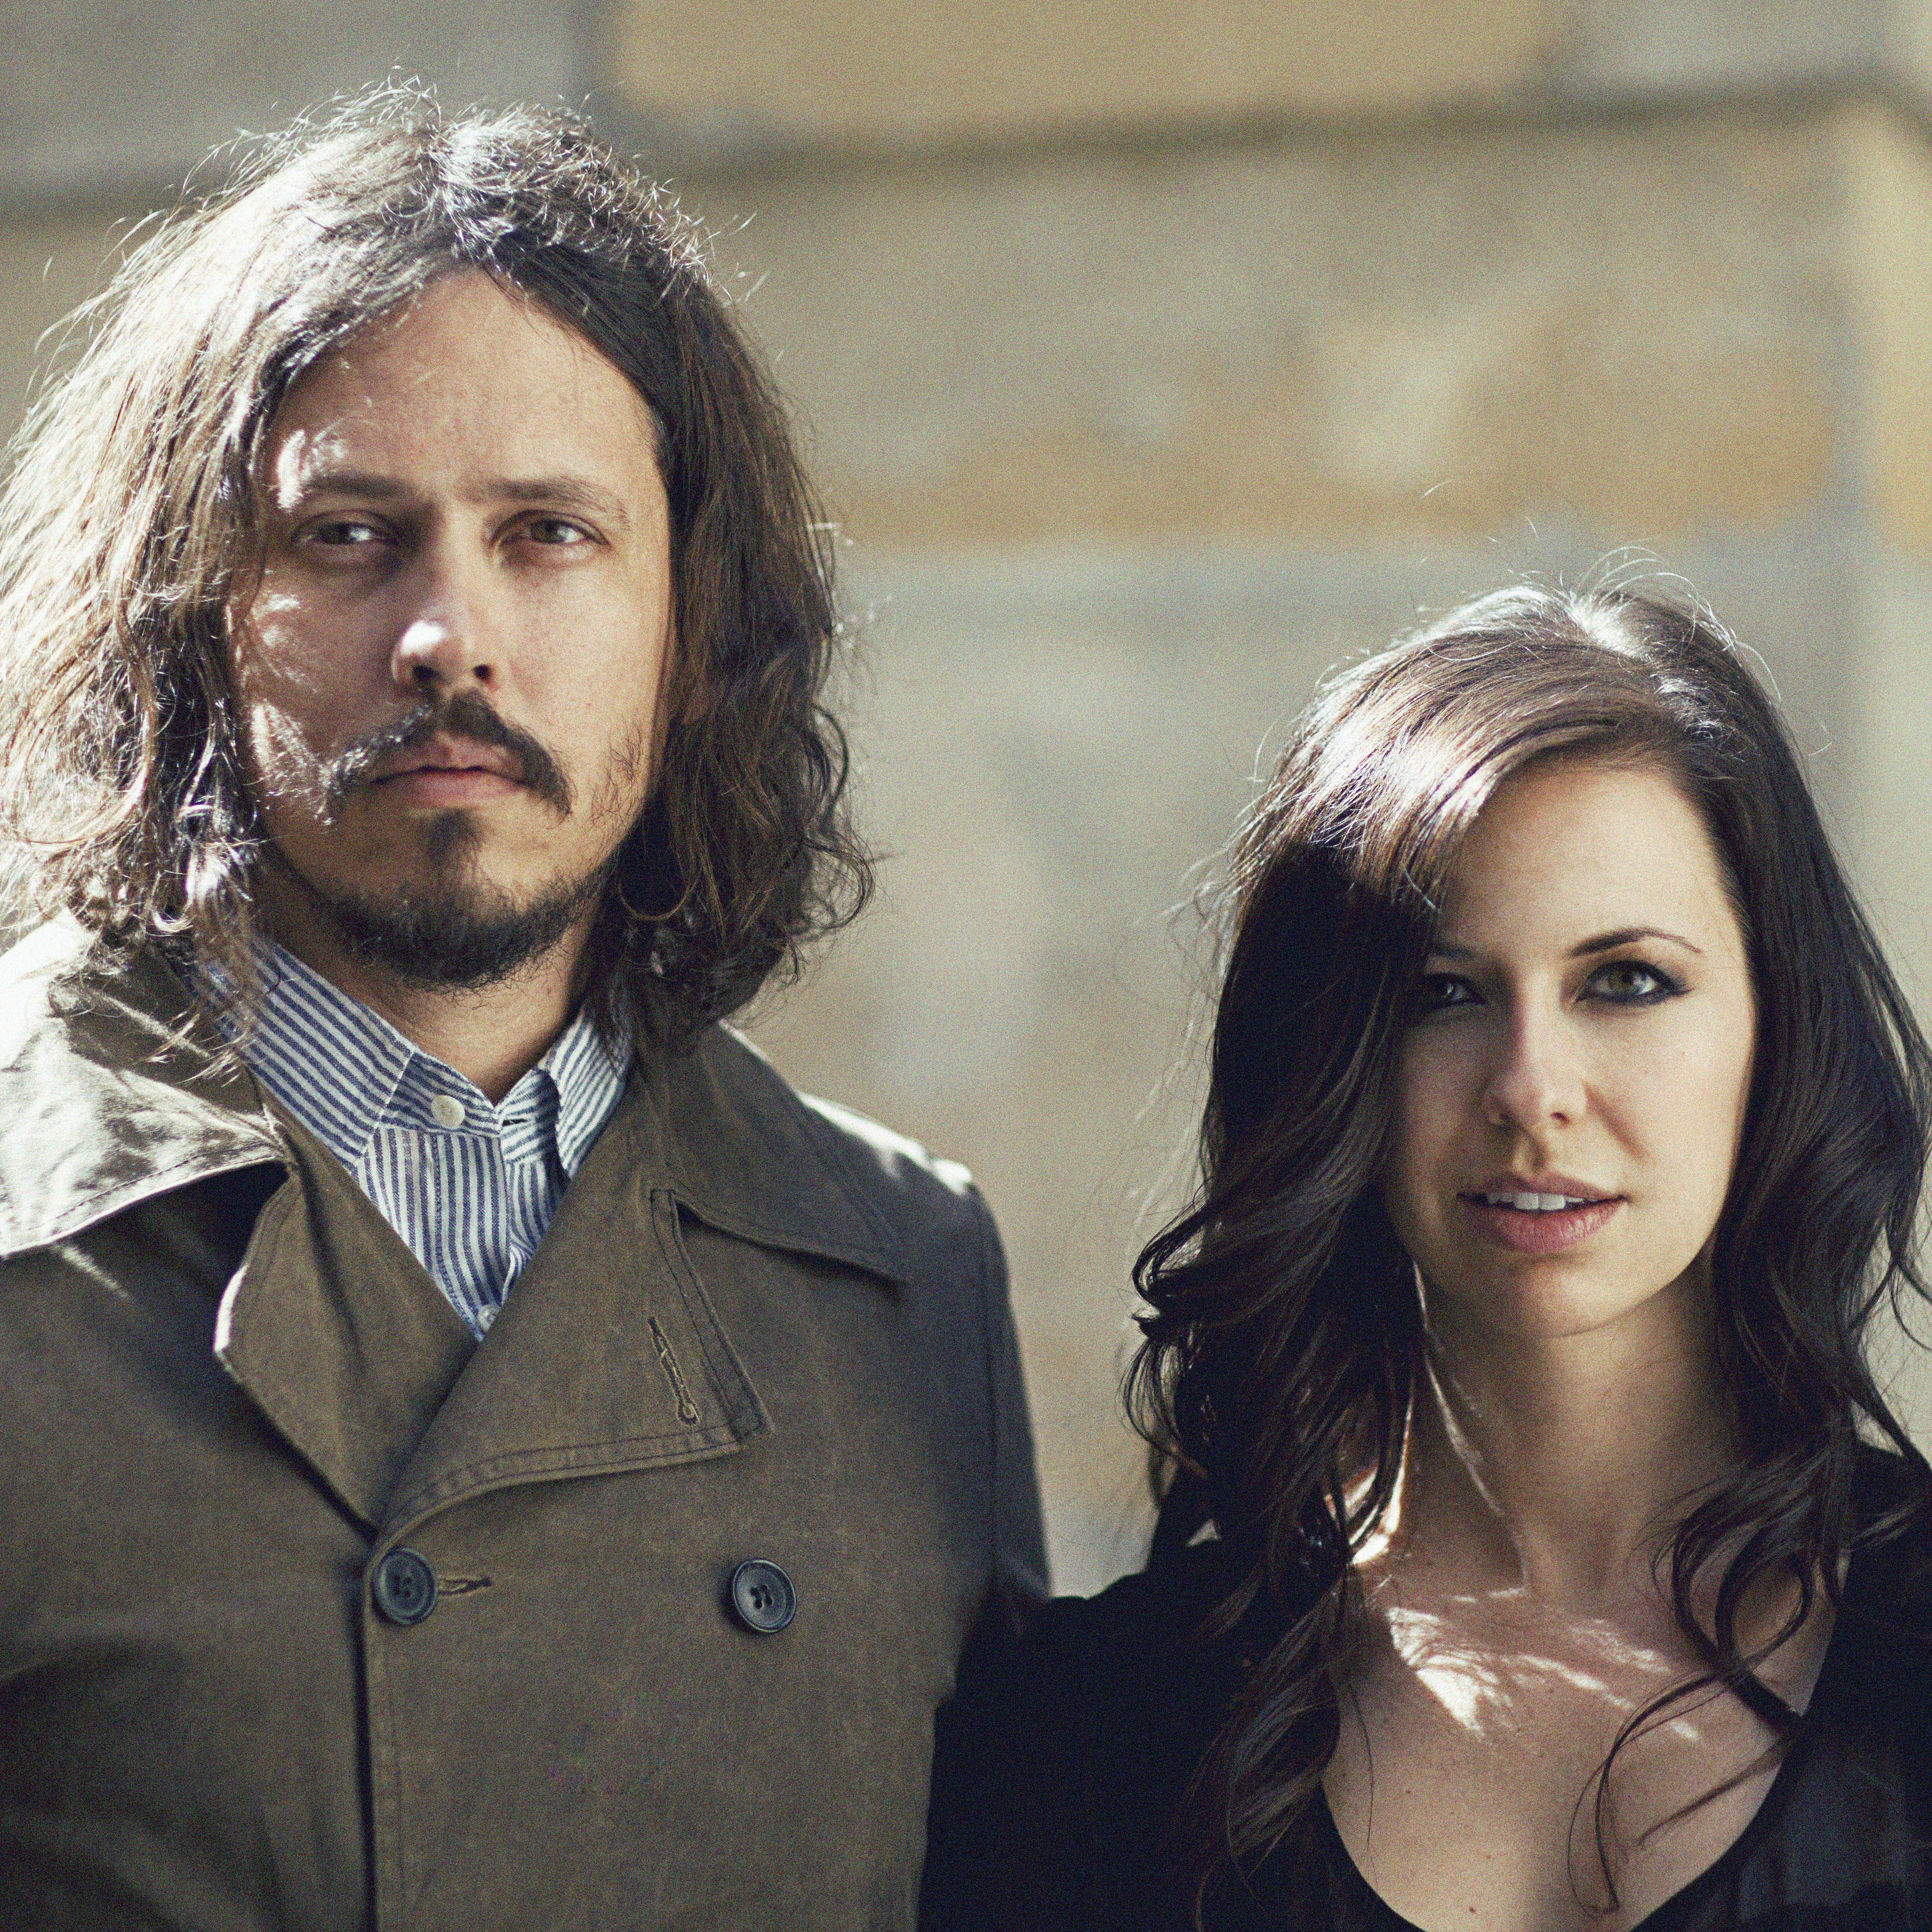 John Paul White and Joy Williams are The Civil Wars